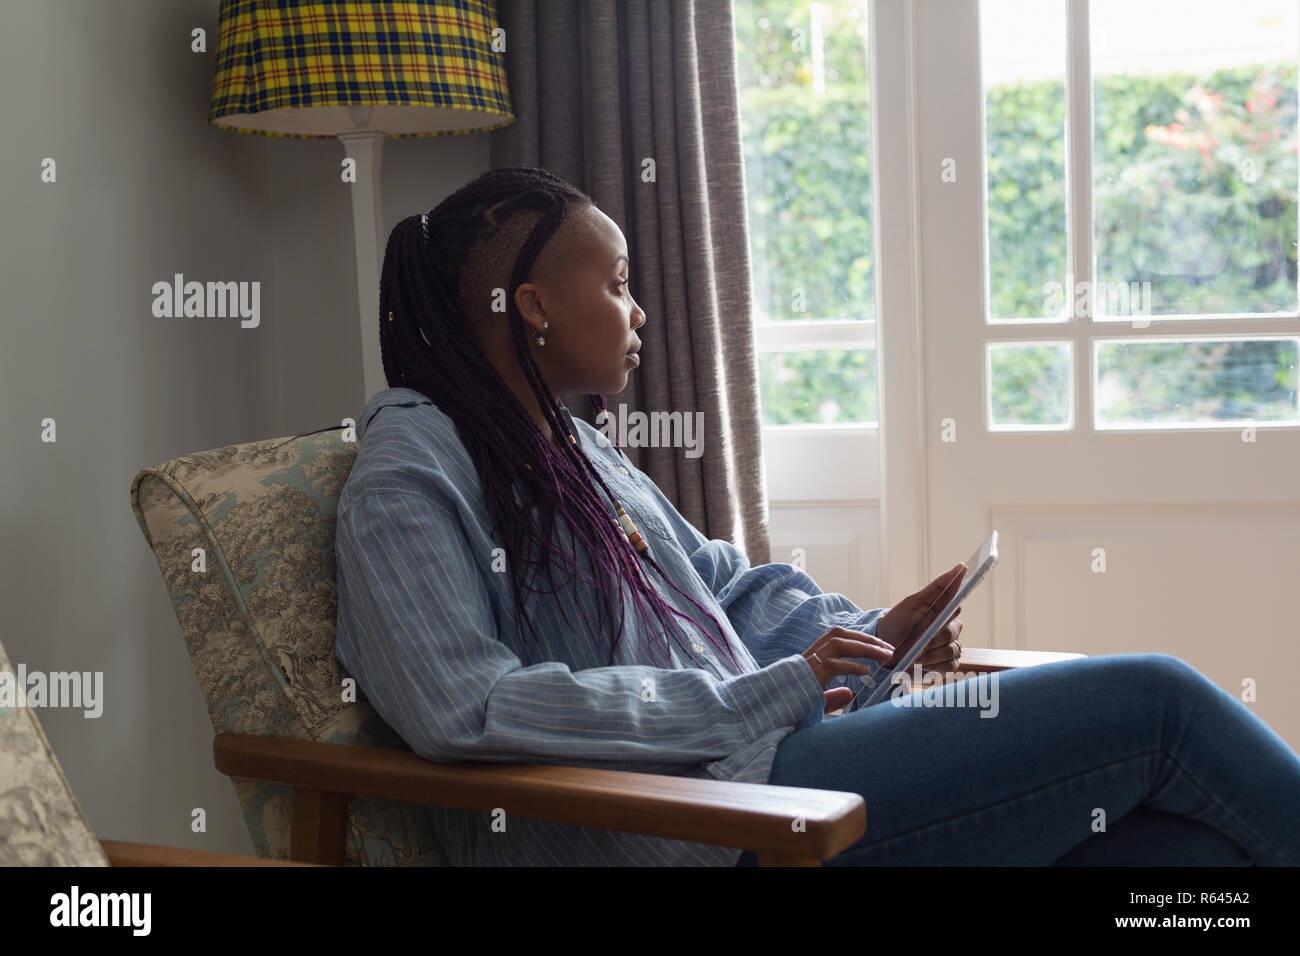 Thoughtful woman using digital tablet in a liviing room Stock Photo